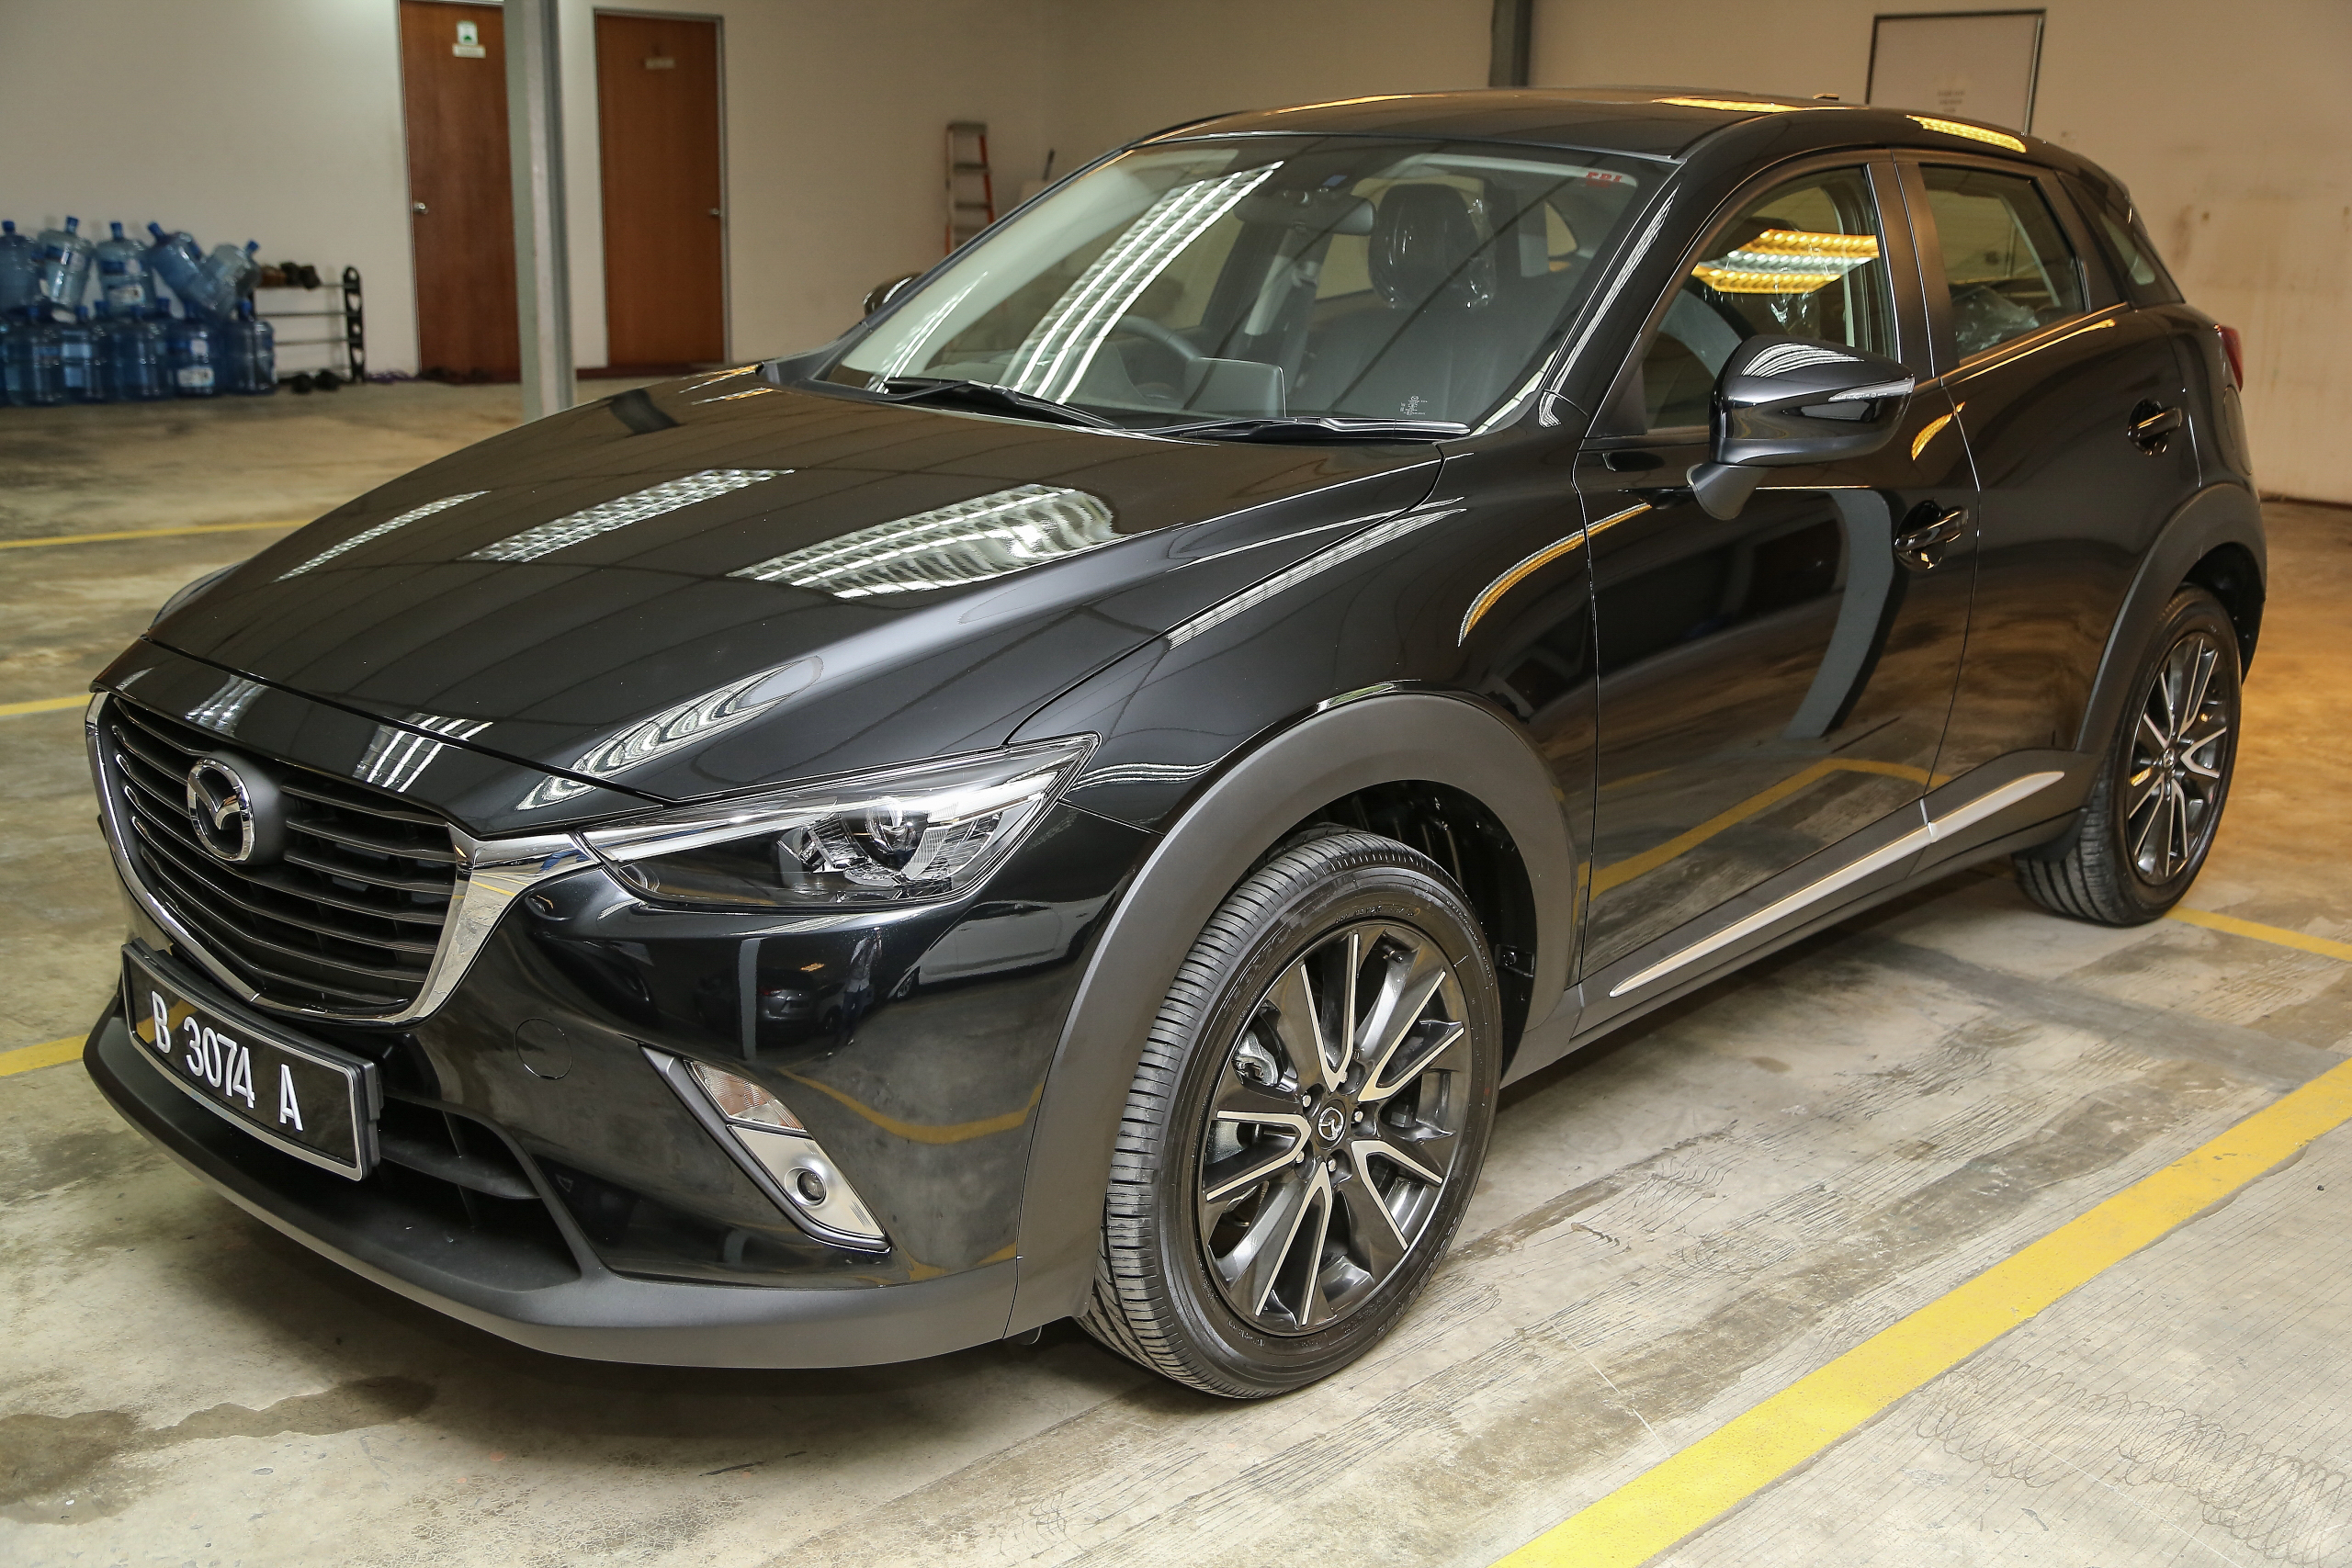 GALLERY: Mazda CX-3 in all five available colours Image 420860